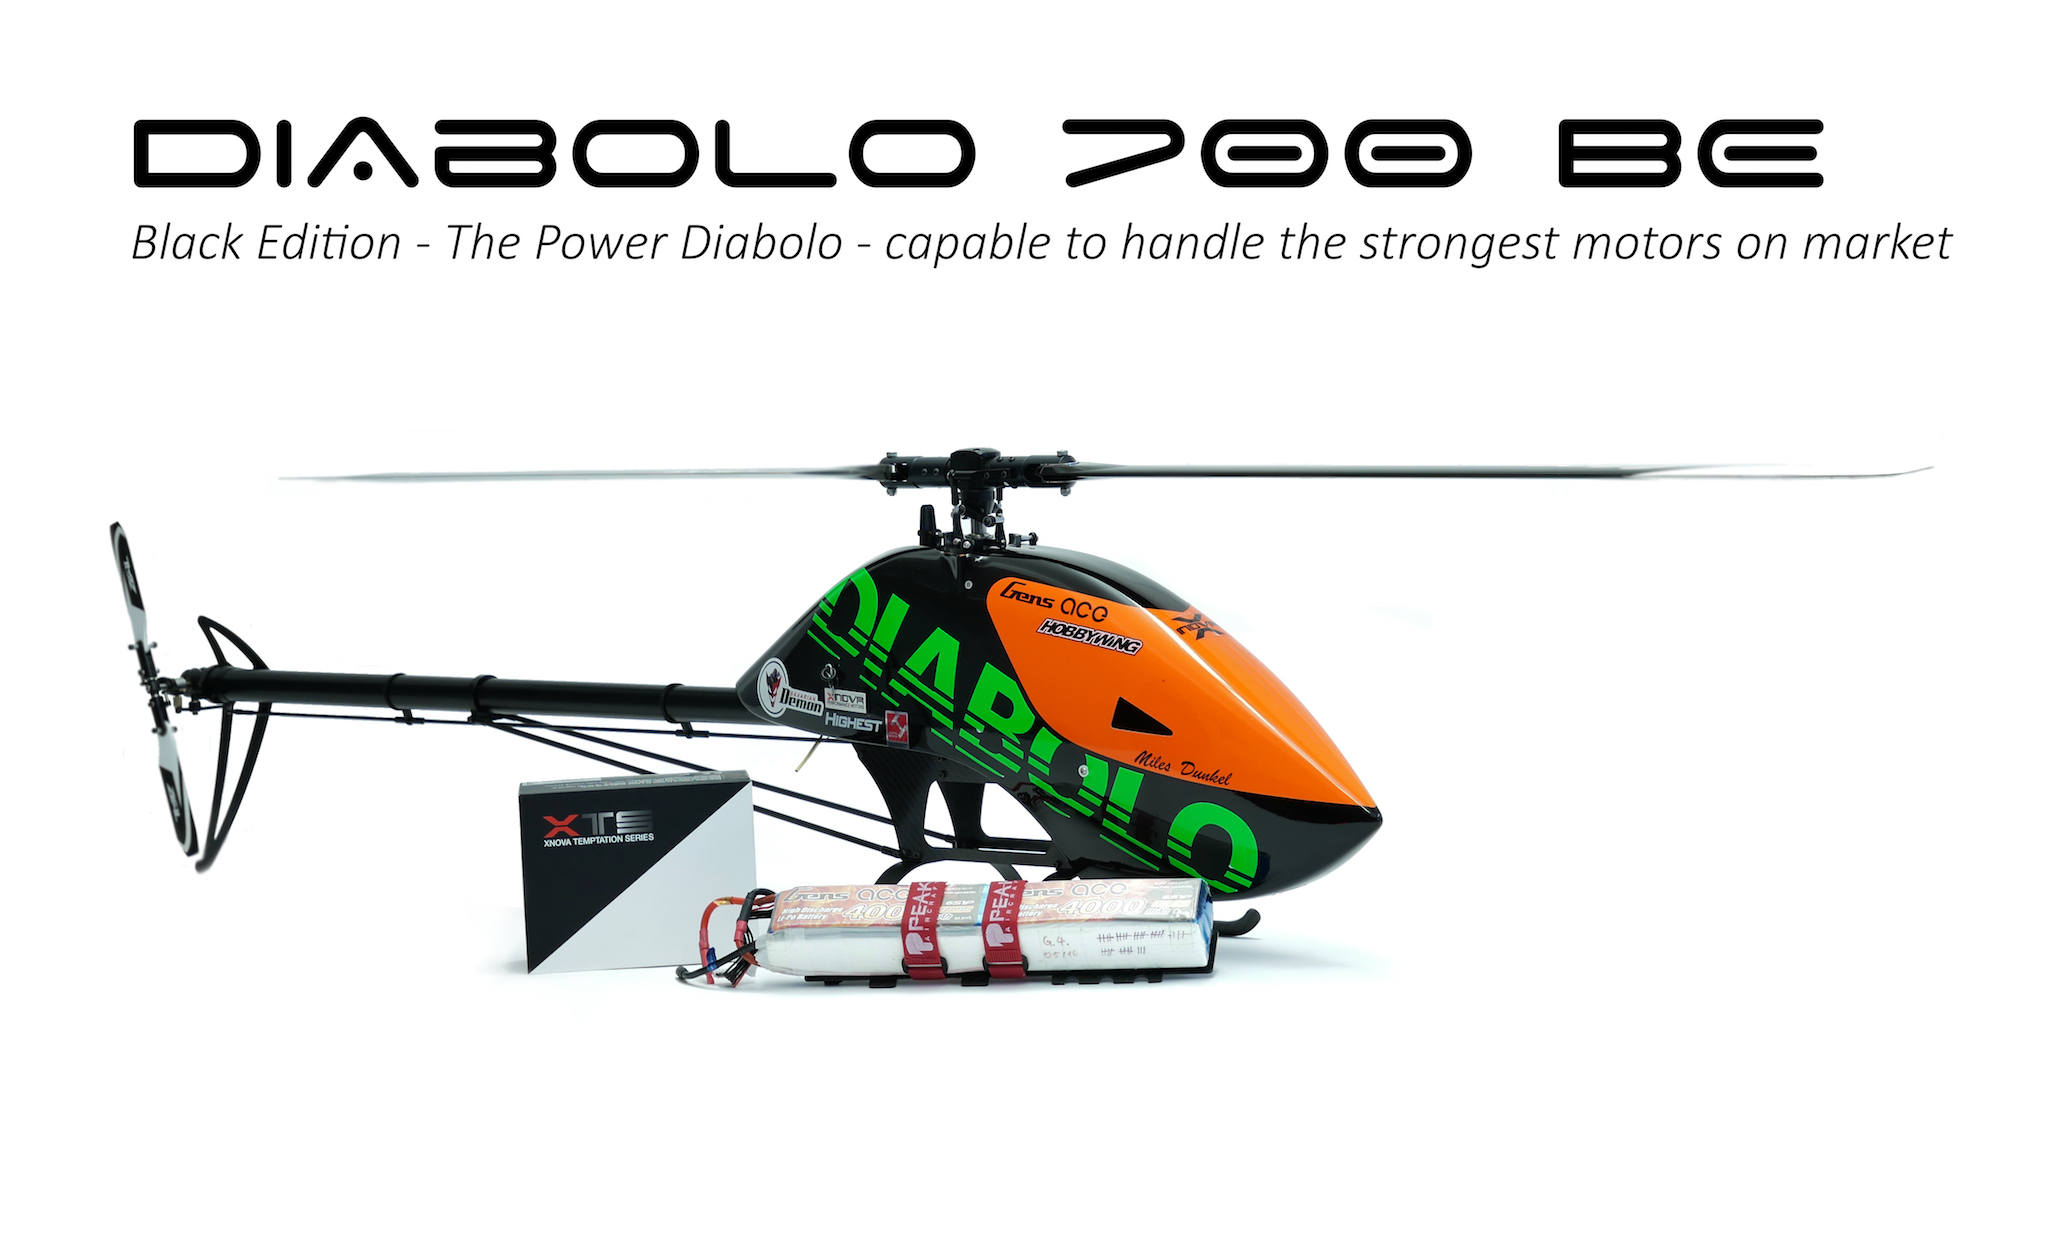 Diabolo 700 Black Edition